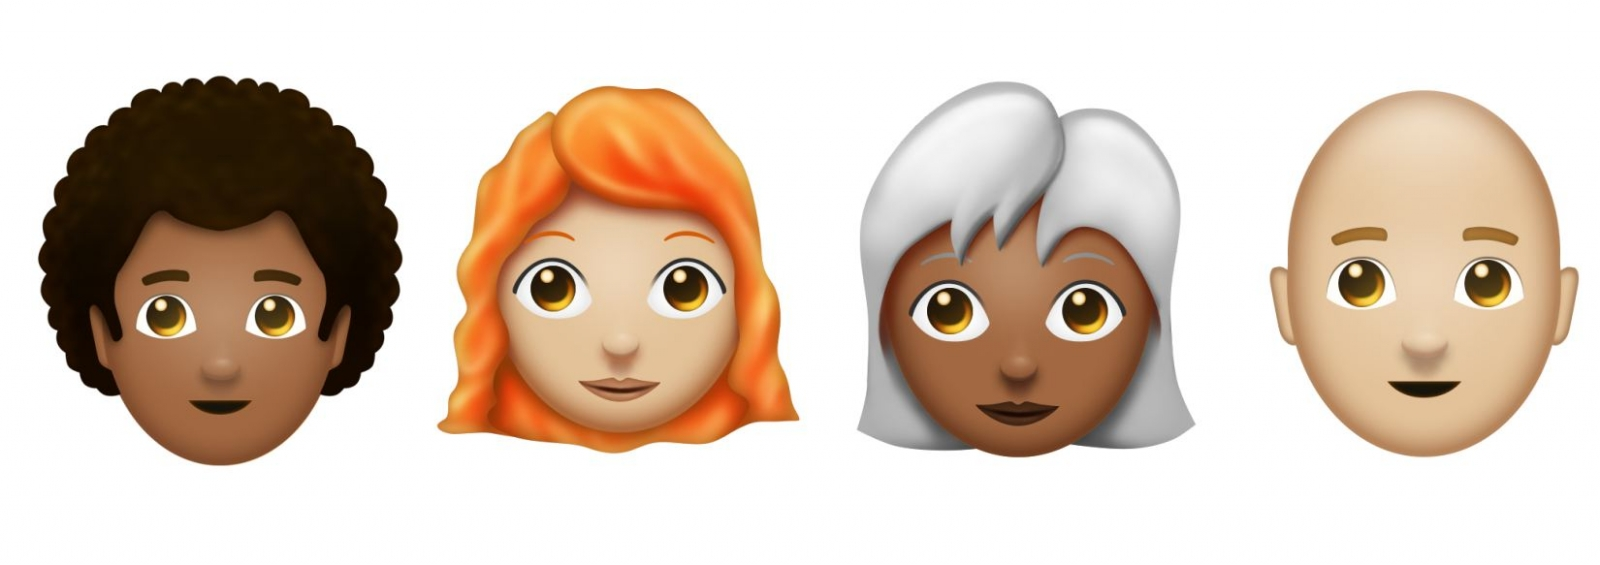 Redhead emoji expected in 2018